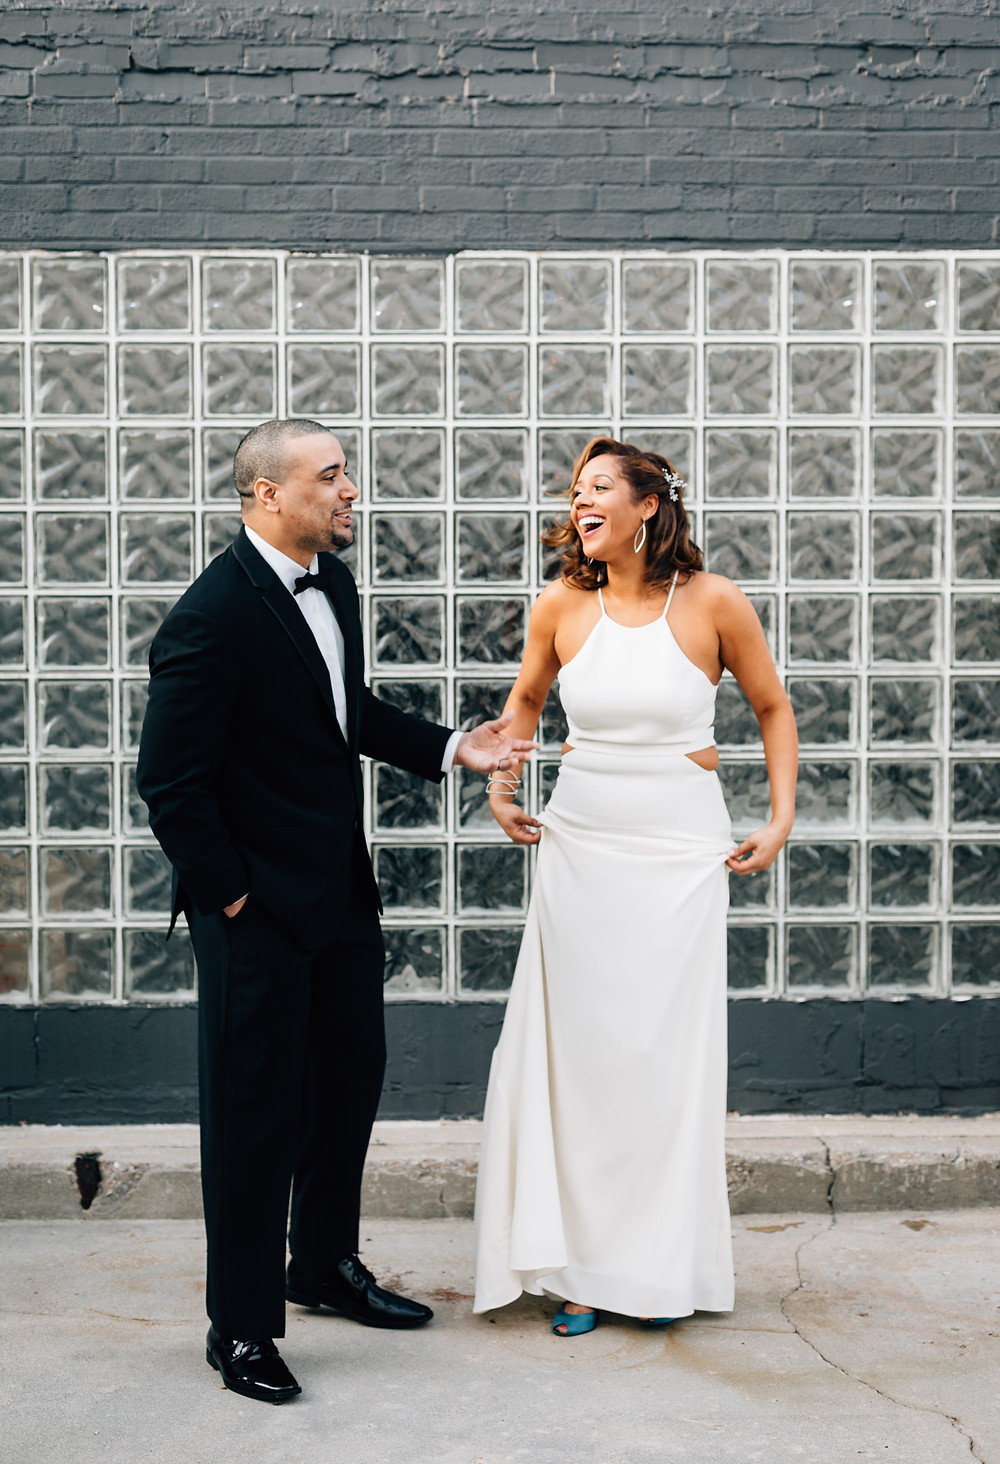 Why natural candid wedding photography is the way to go